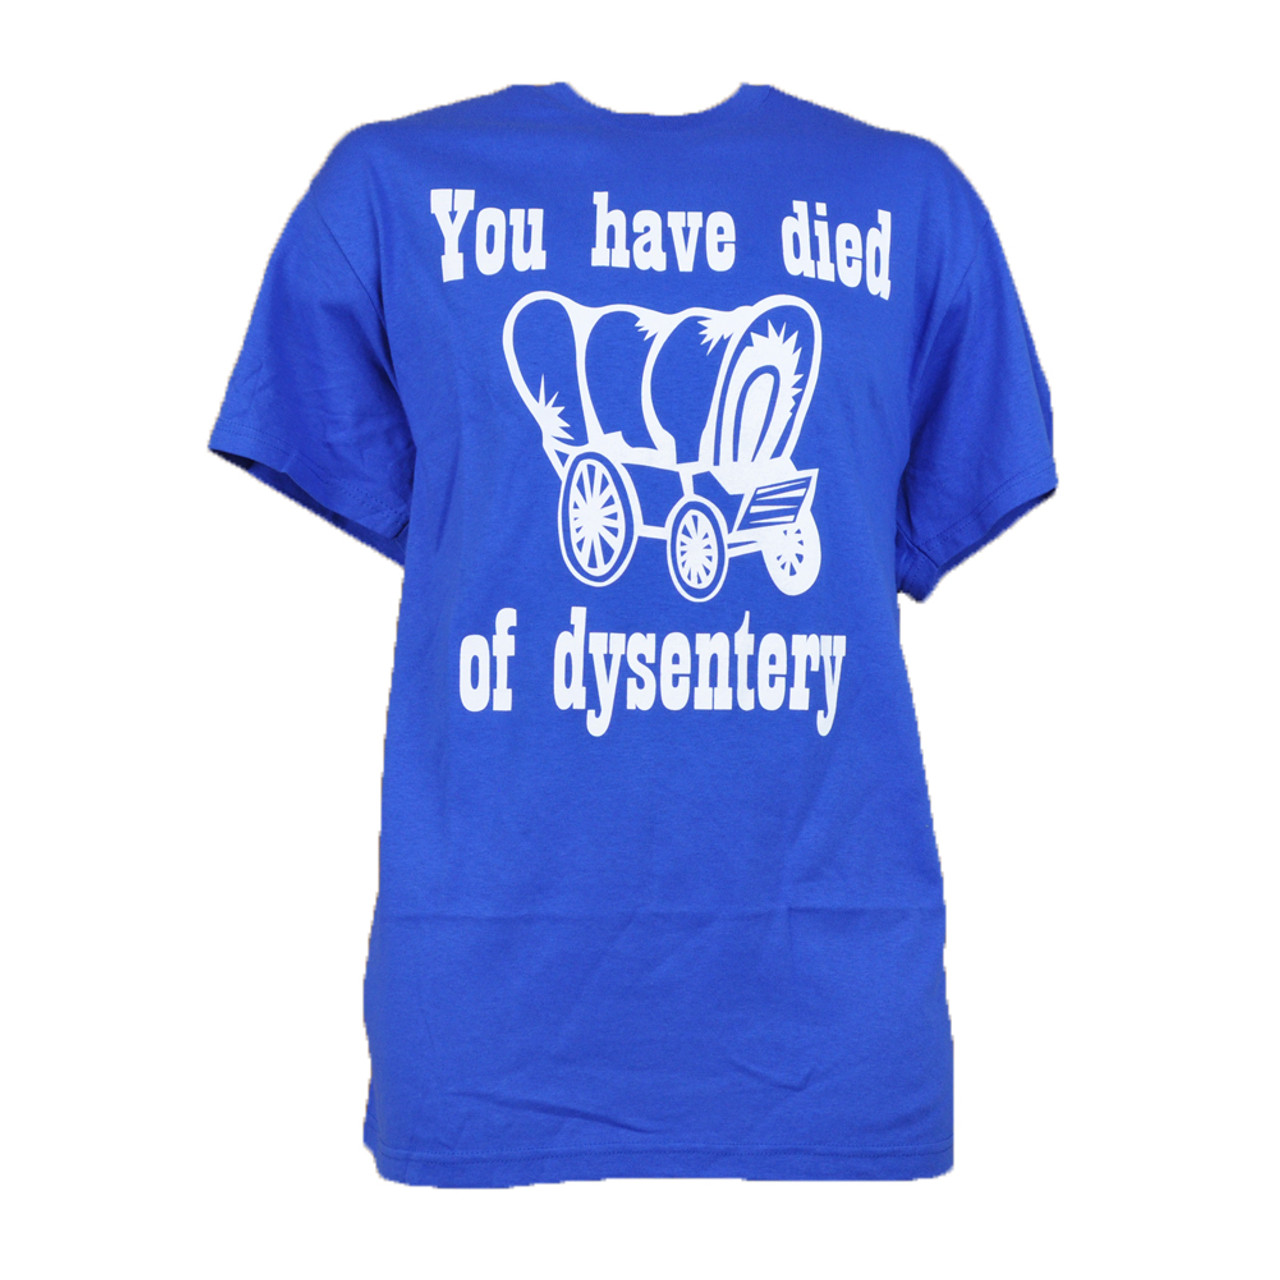 91ac5de46 You Have Died Of Dysentery Carriage Authentic Spencer Man Funny Man Graphic  Tee - Cap Store Online.com